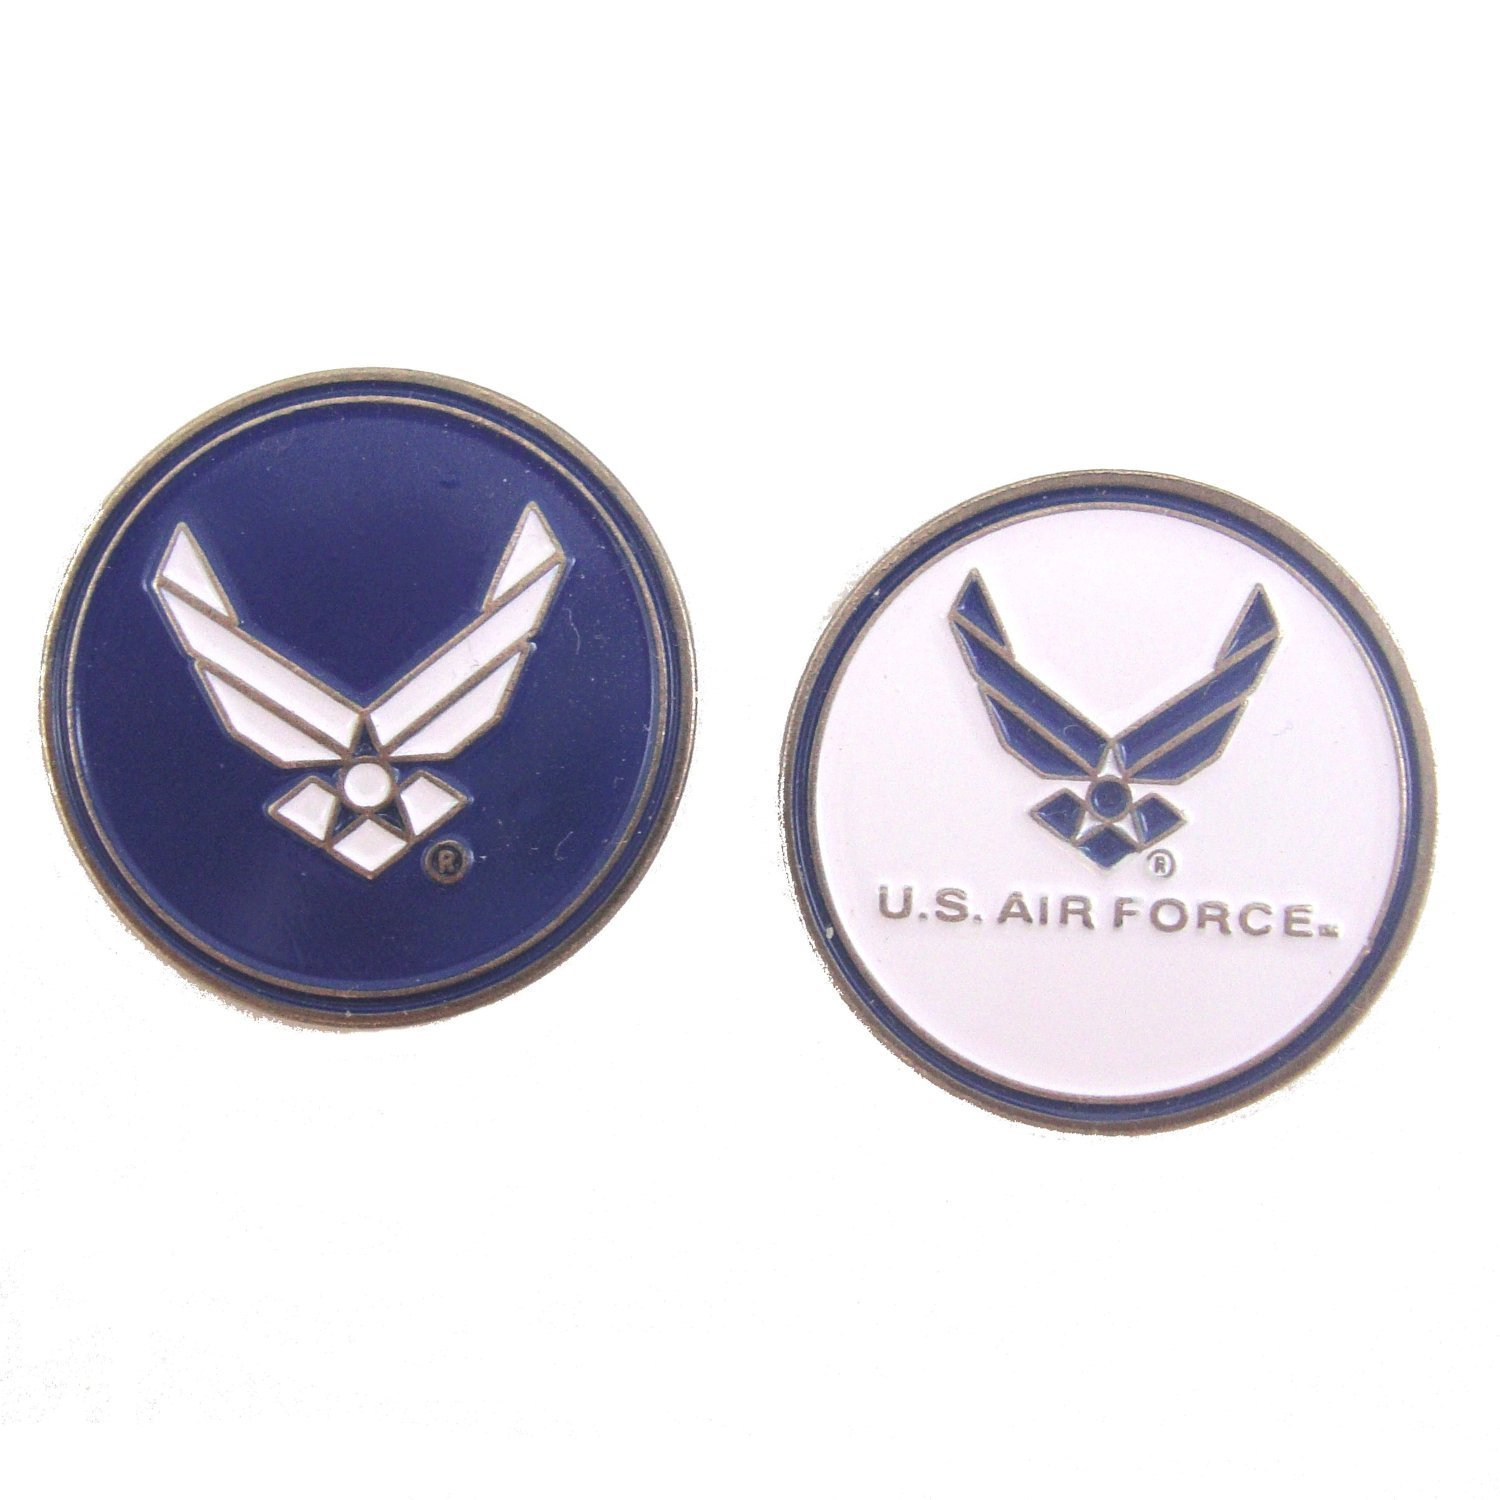 U.S. Air Force (USAF) Double-Sided Golf Ball Marker, U.S. Air Force Golf Ball Marker By Waggle Pro Shop,USA